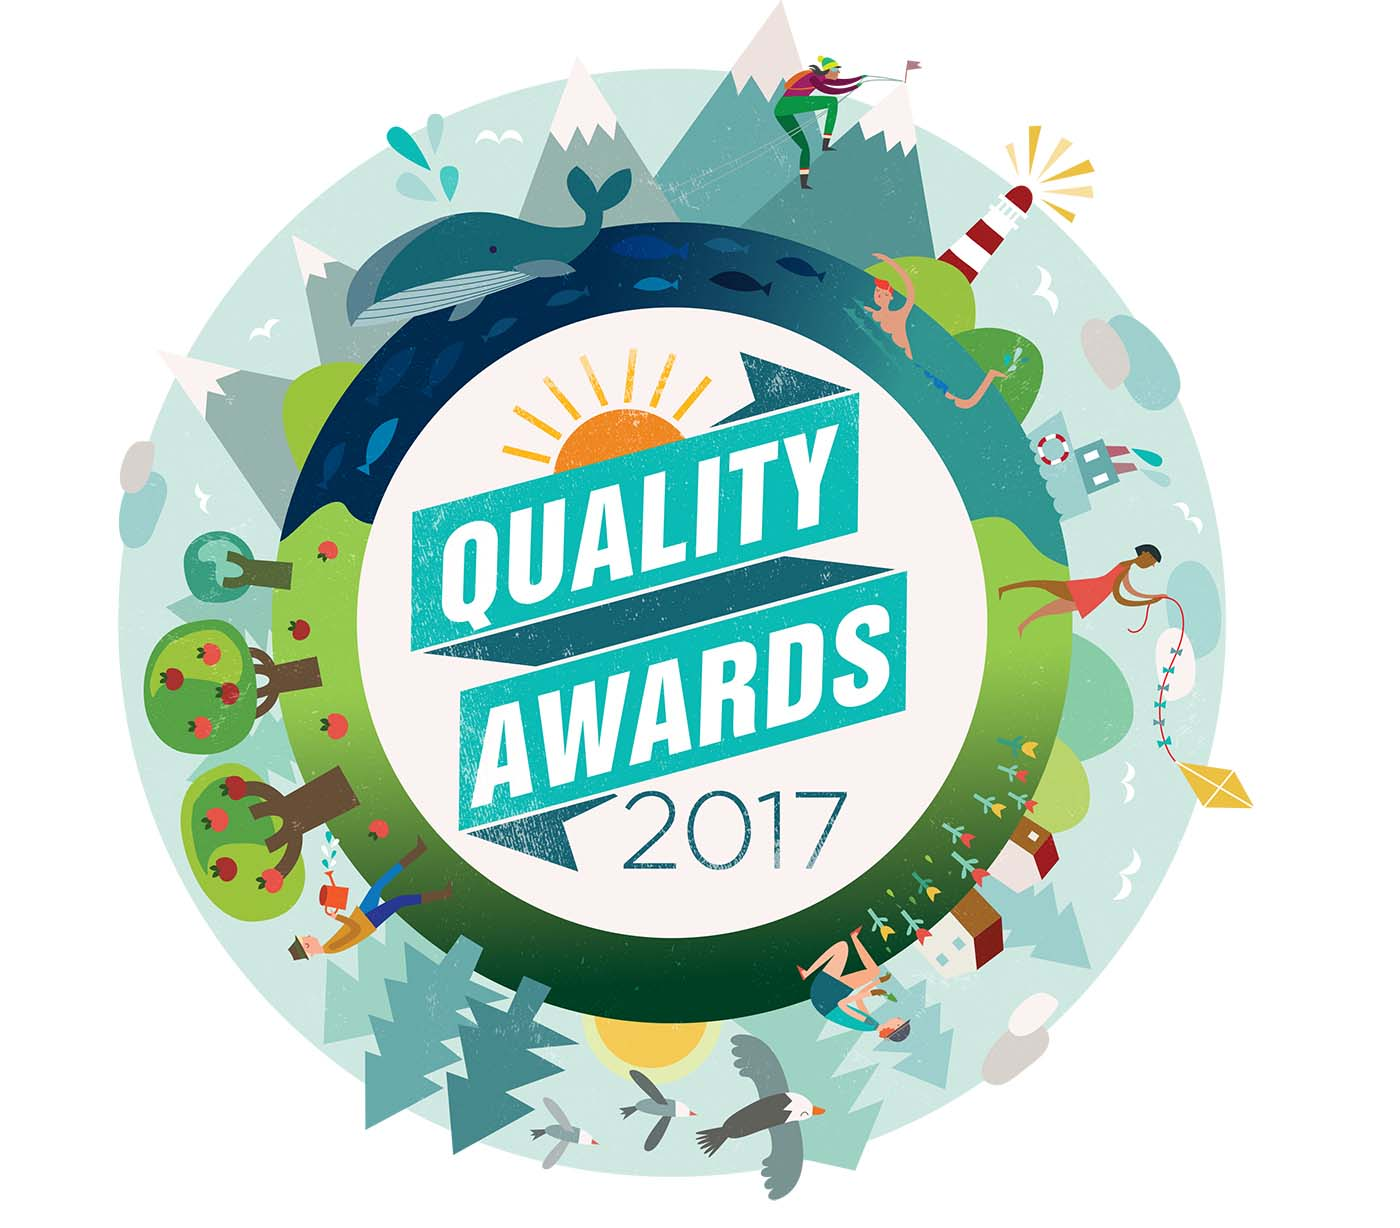 Quality Awards 2017